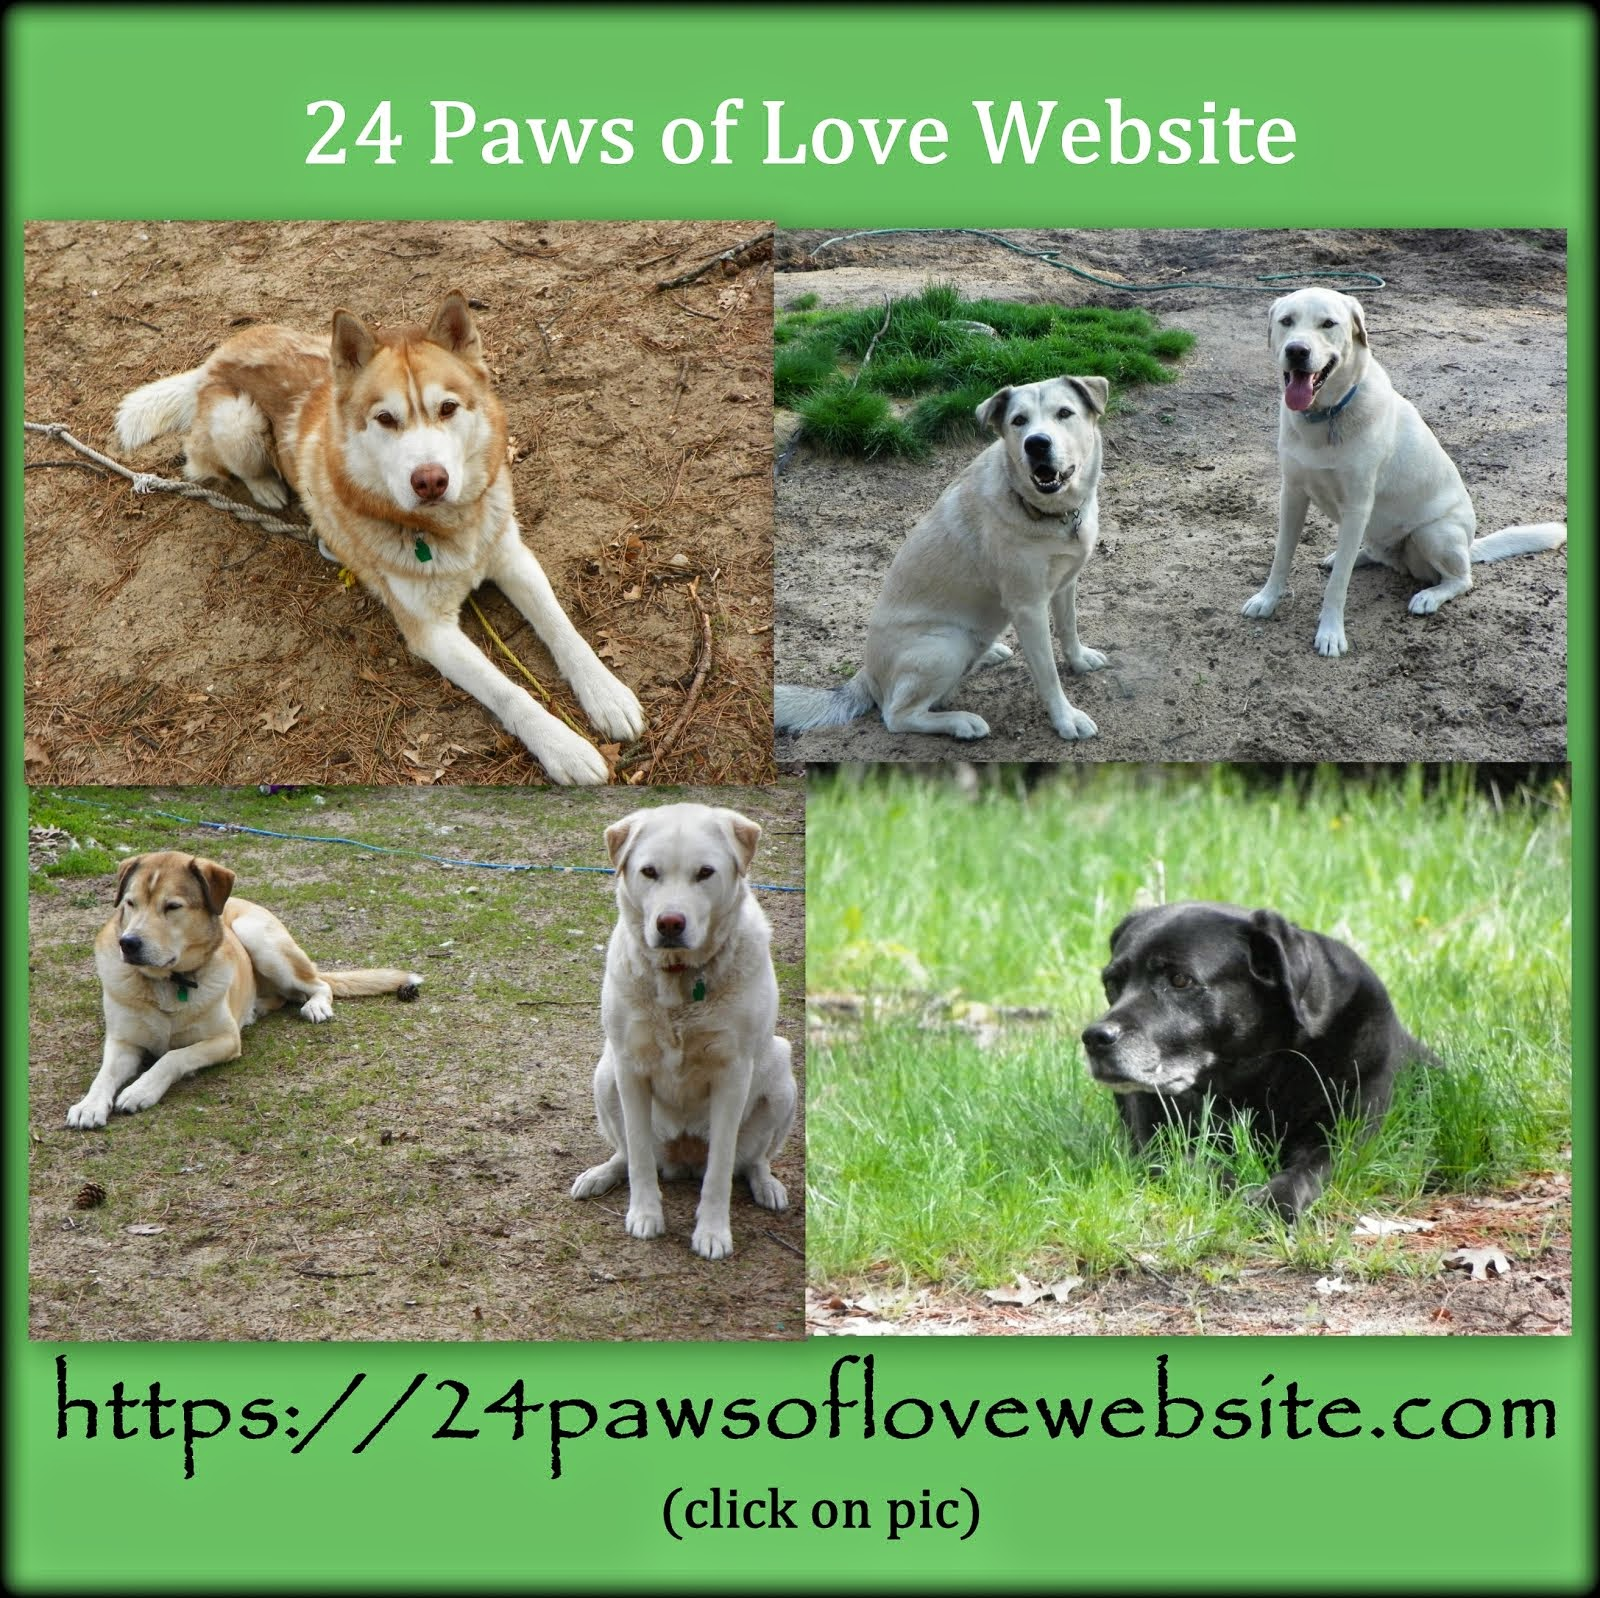 *NEW* 24 Paws of Love Website